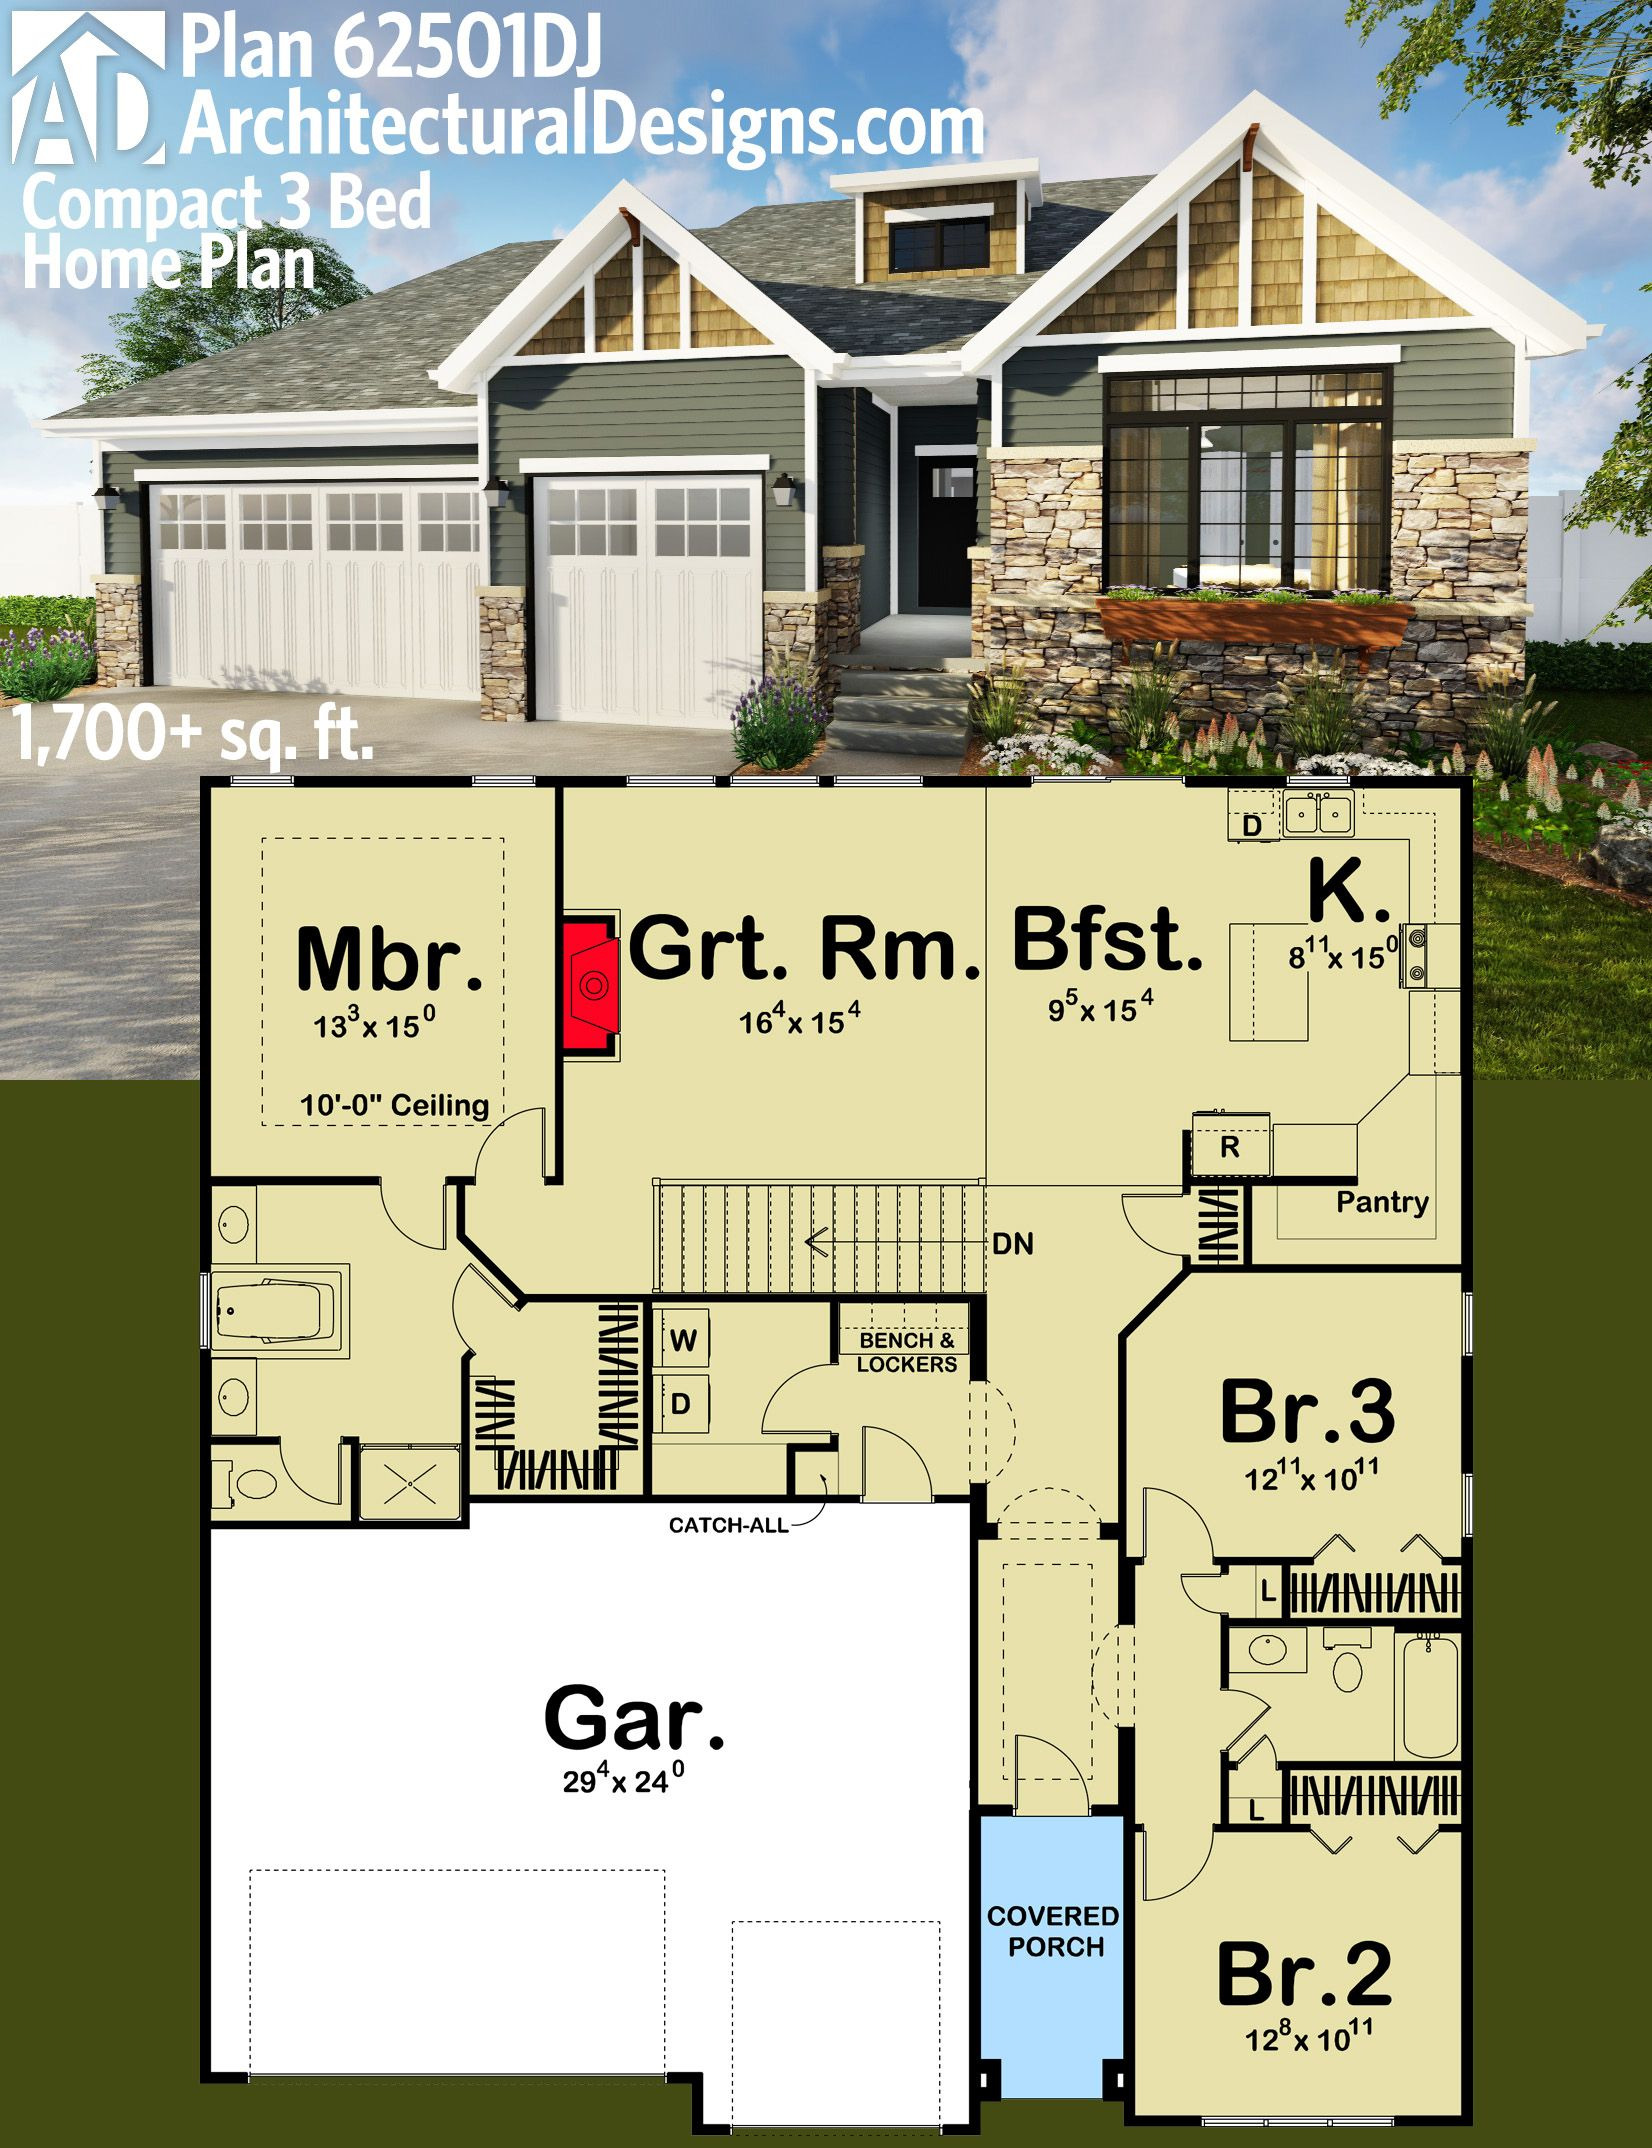 Easy to Build House Plans Lovely Architectural Designs Pact 3 Bed House Plan Dj Easy